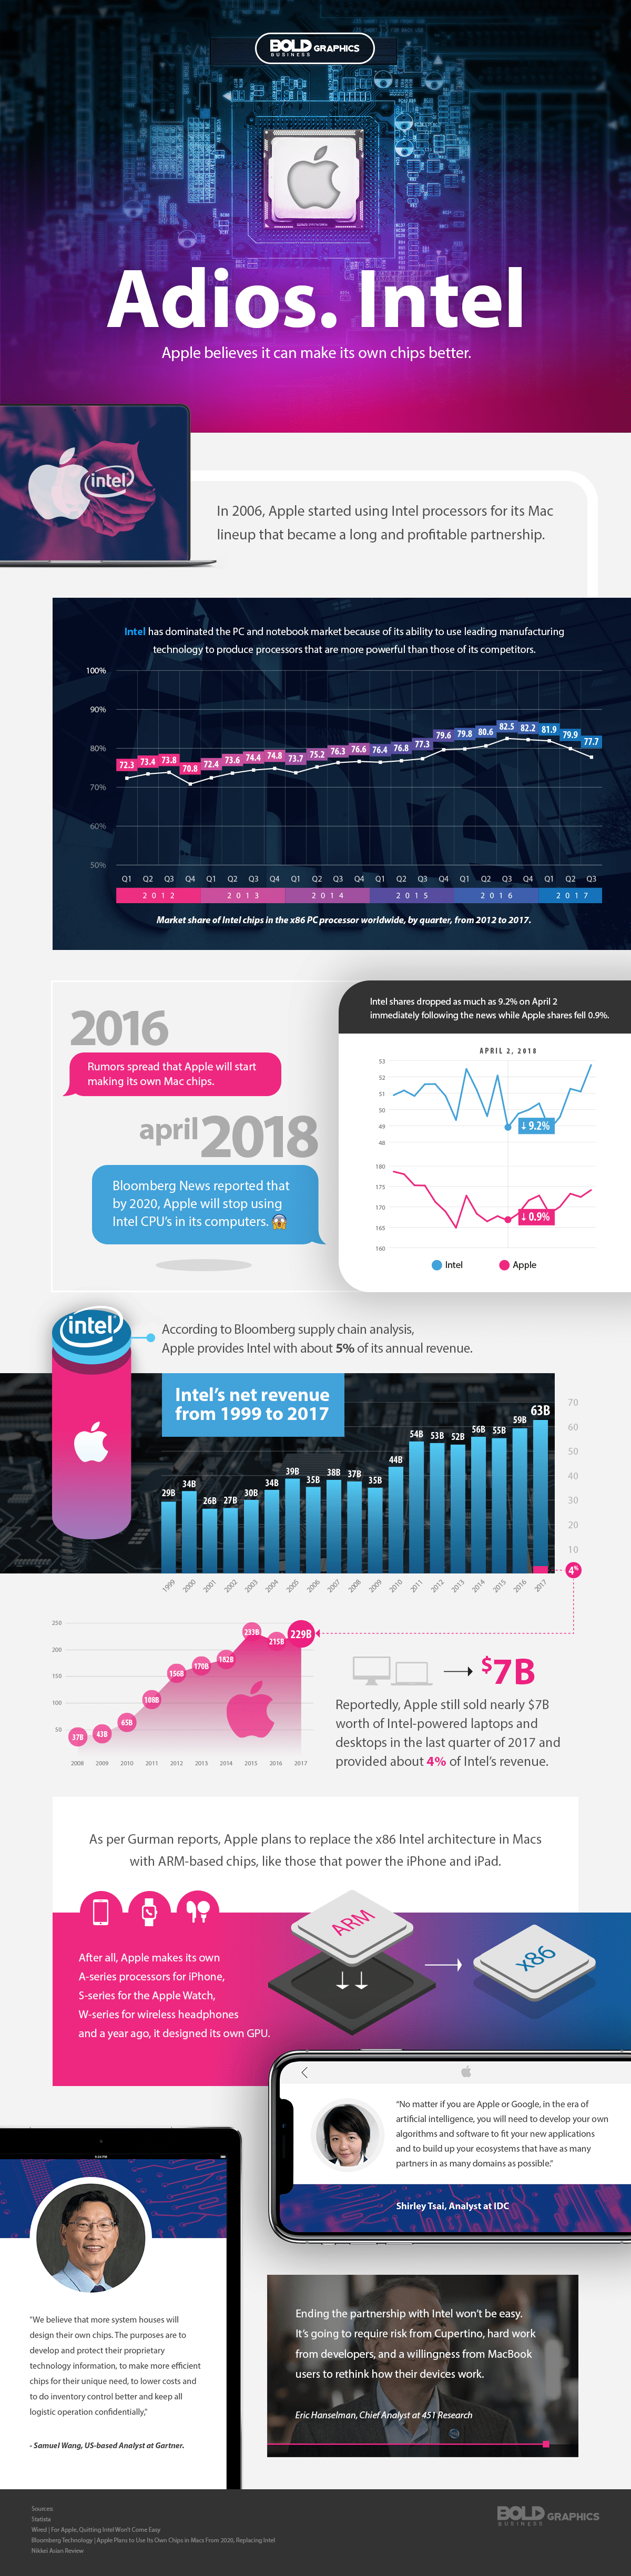 apple transition to intel,apple to use intel chips,apple to buy intel,apple to use intel modem,intel shares,apple market share,intel revenue,apple revenue,apple to intel infographic